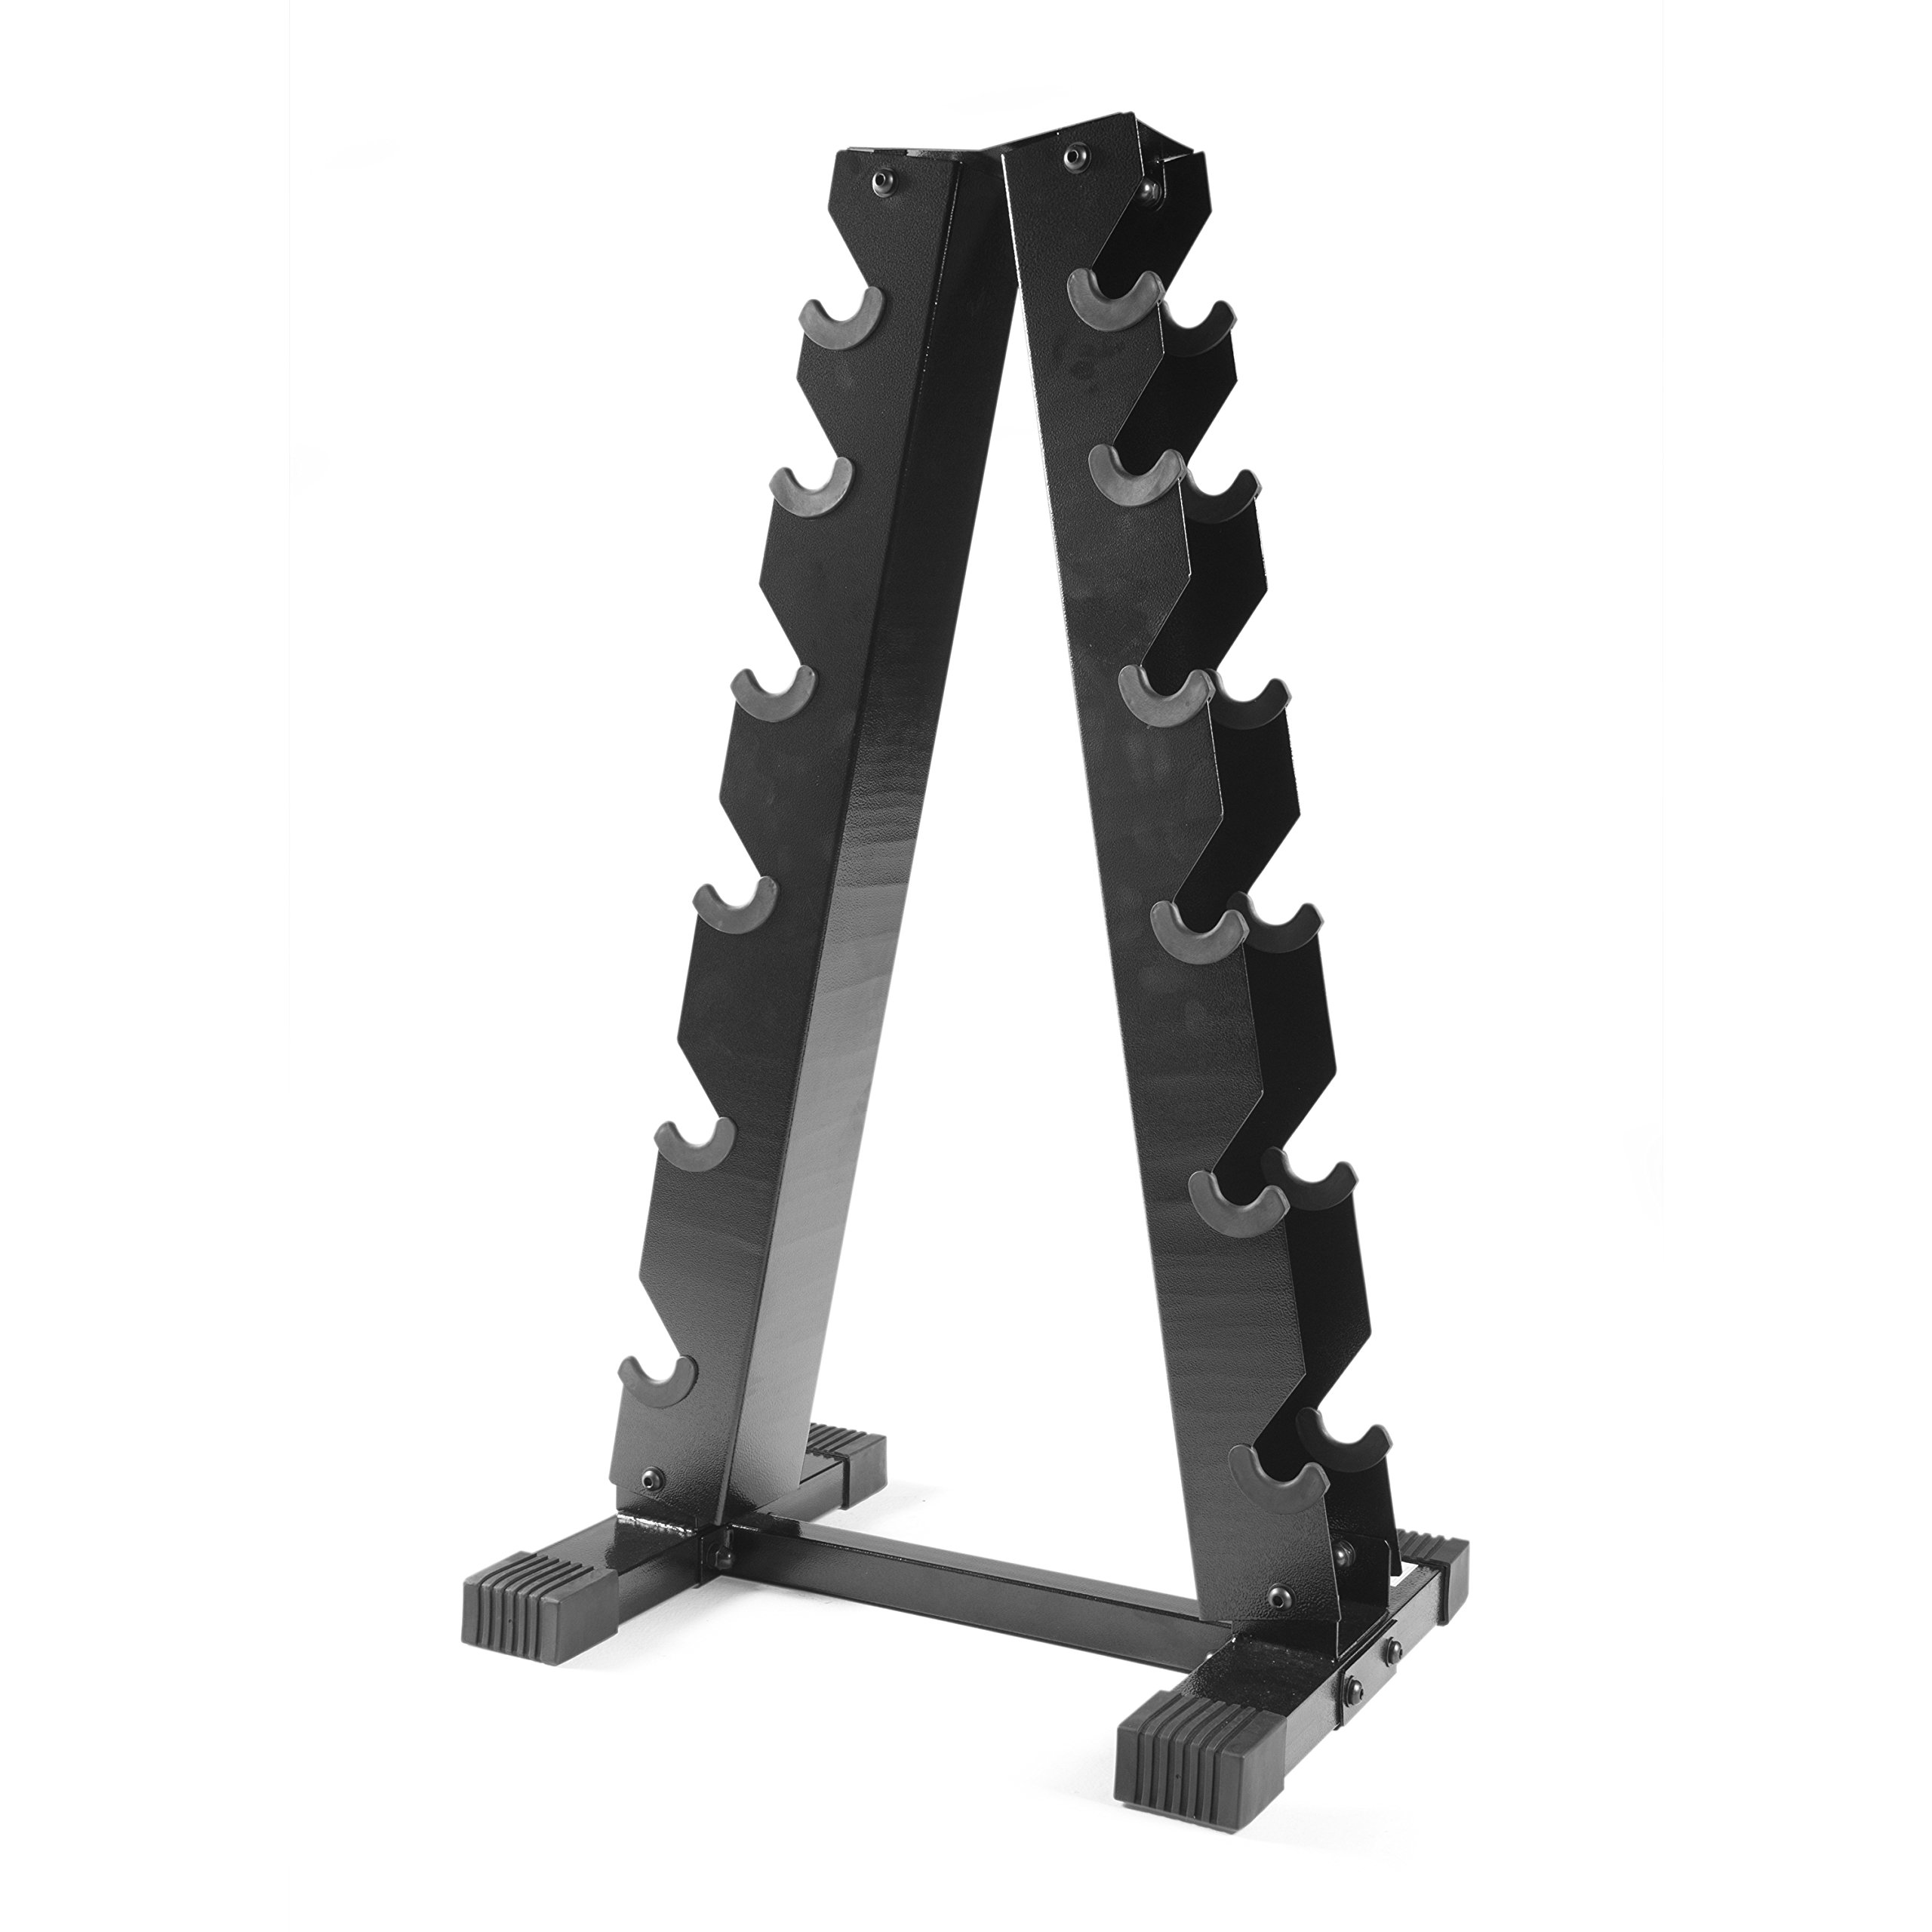 CAP Barbell A-Frame Dumbbell Rack, Black by CAP Barbell